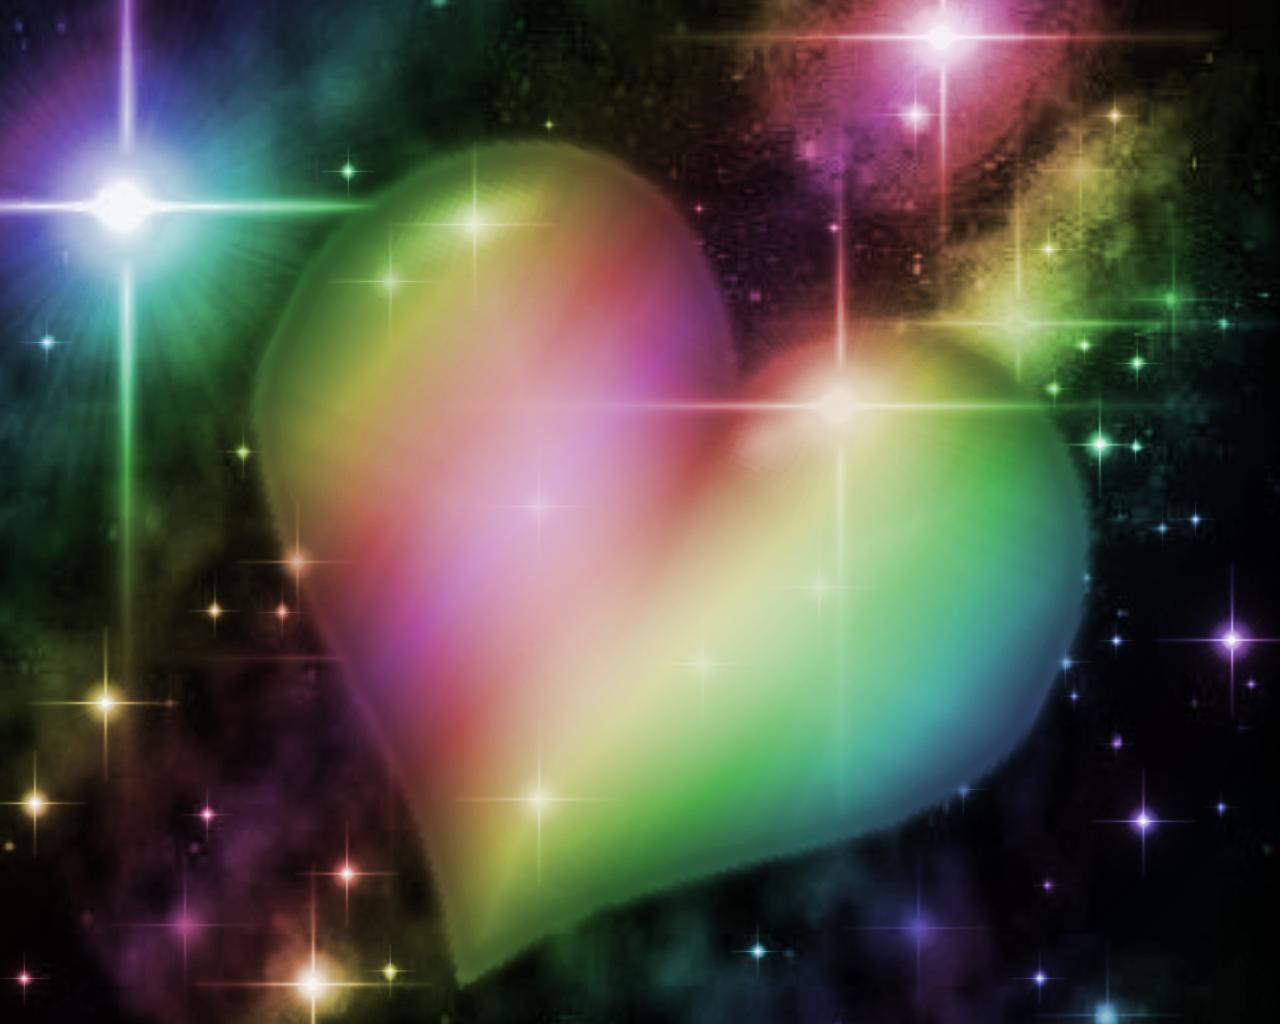 Background wallpaper image rainbow heart with starry background